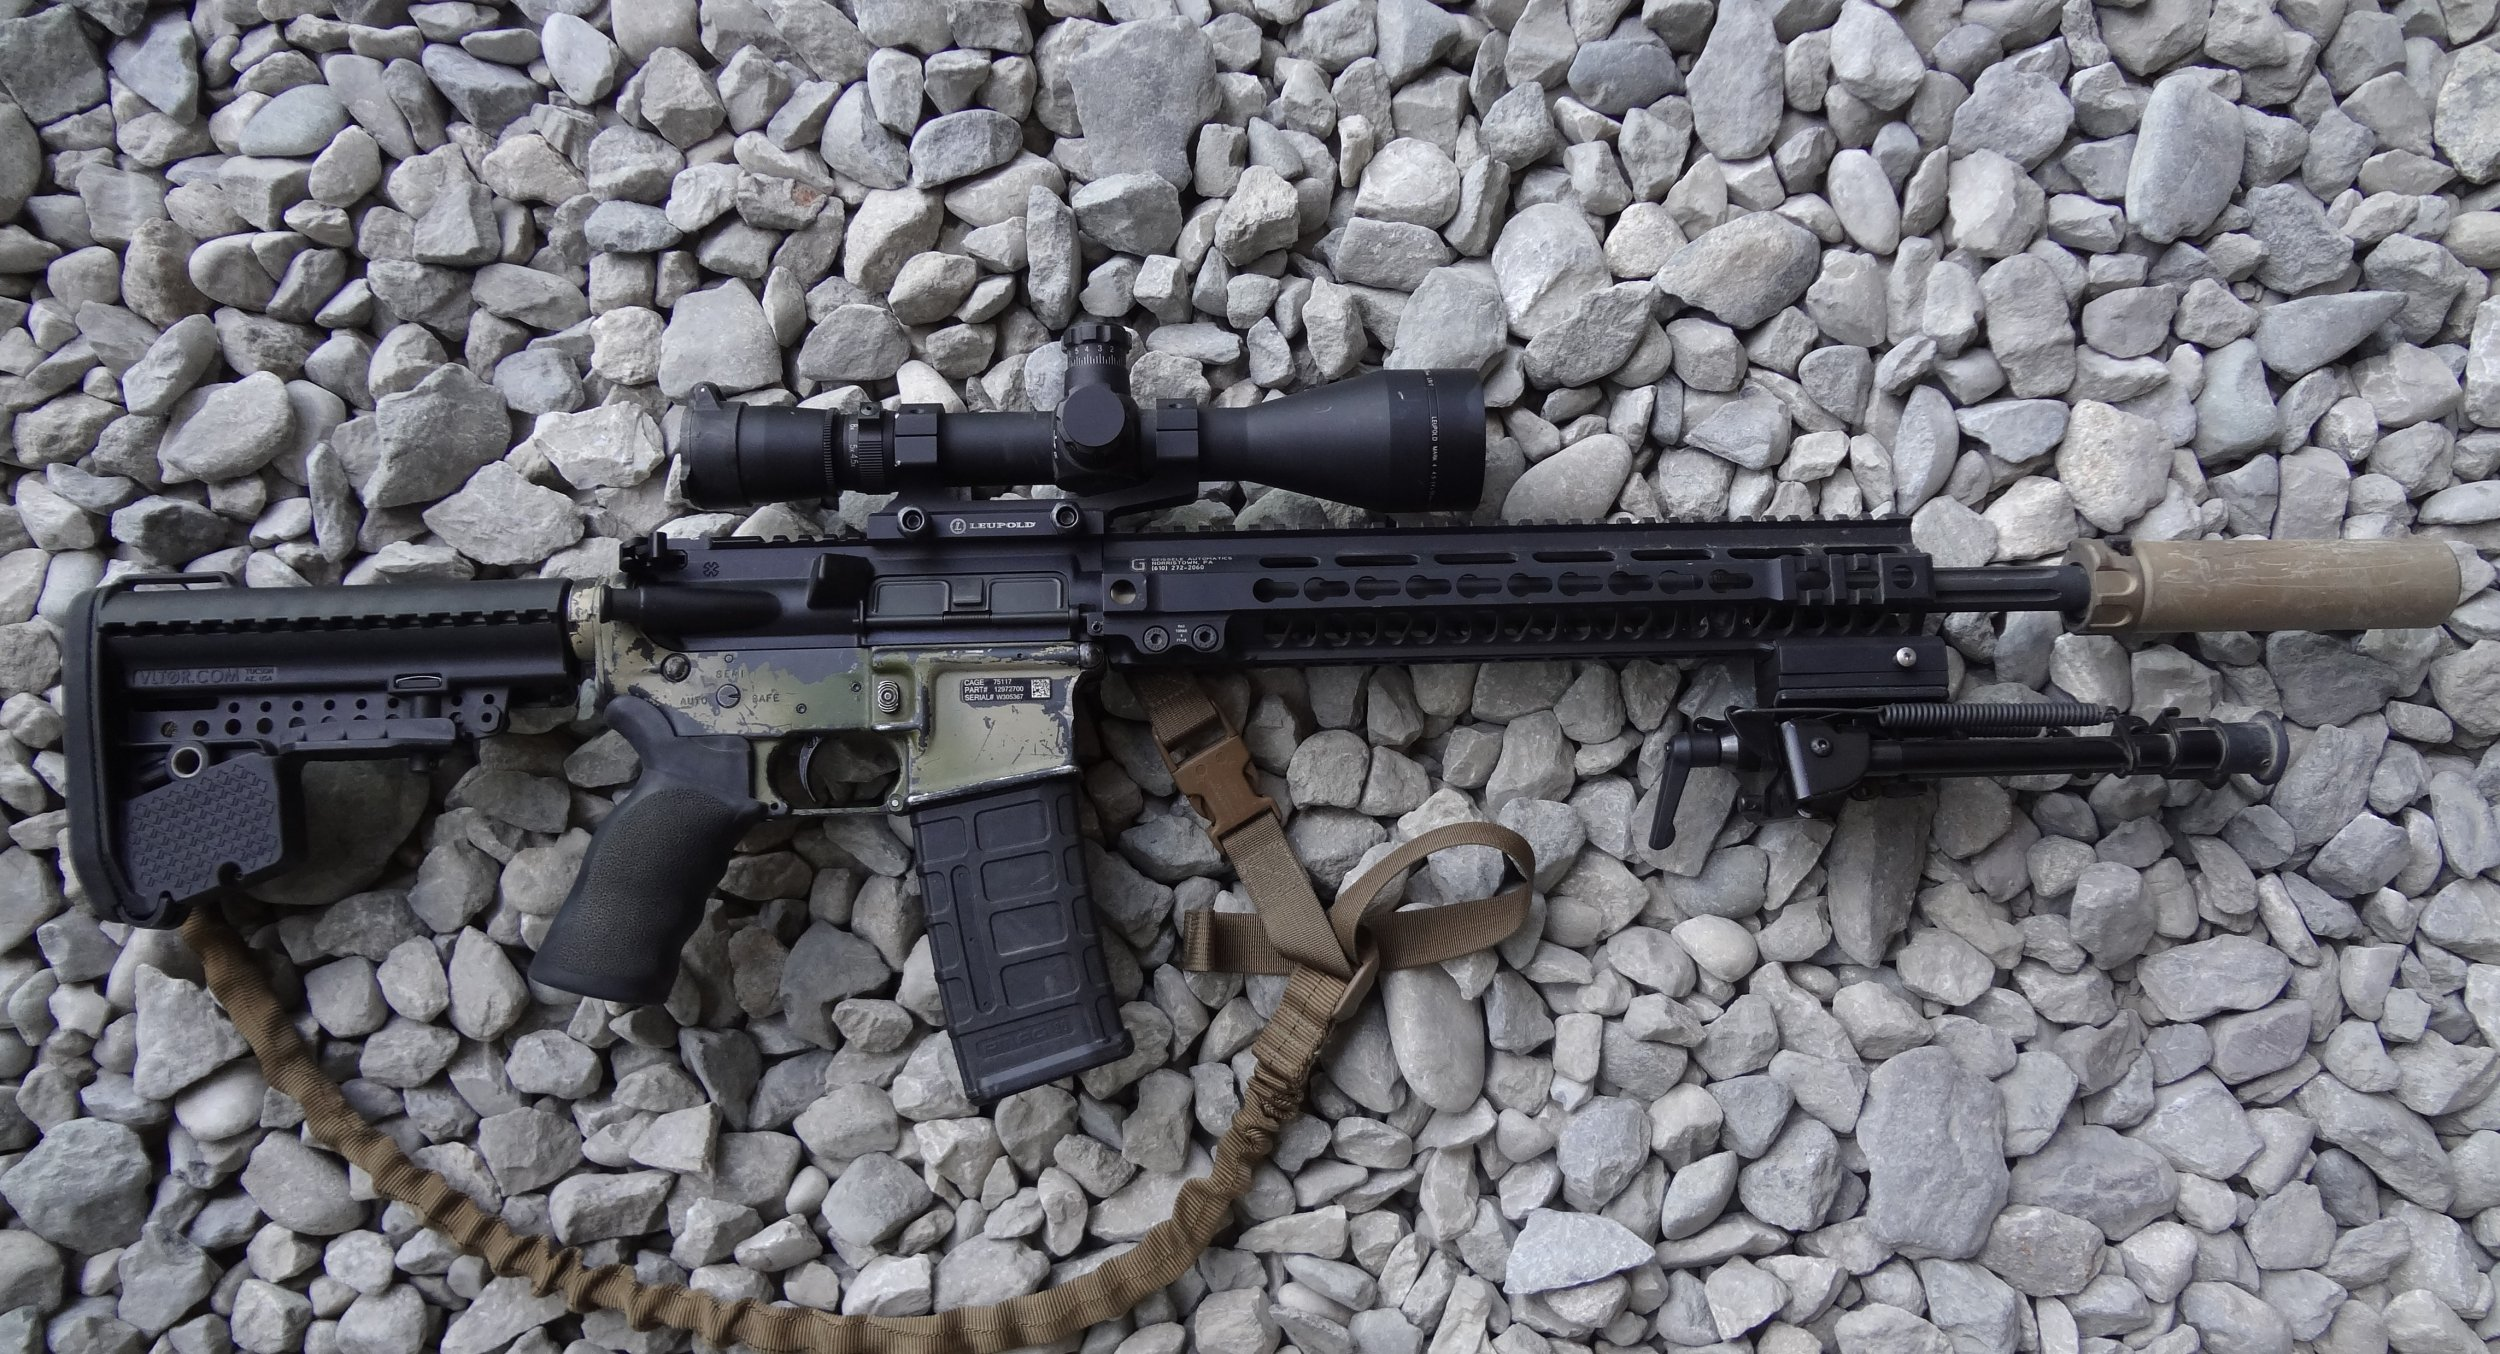 Jeff Gurwitch Article Tactical AR 15 M4 M4A1 Carbine SBR Sub Carbine Accessories Part II DefenseReview.com DR PIC D Tactical AR 15/M4/M4A1 Carbine/SBR Aftermarket Accessories for Military Combat Applications: The Competition to Combat Crossover, Part 2